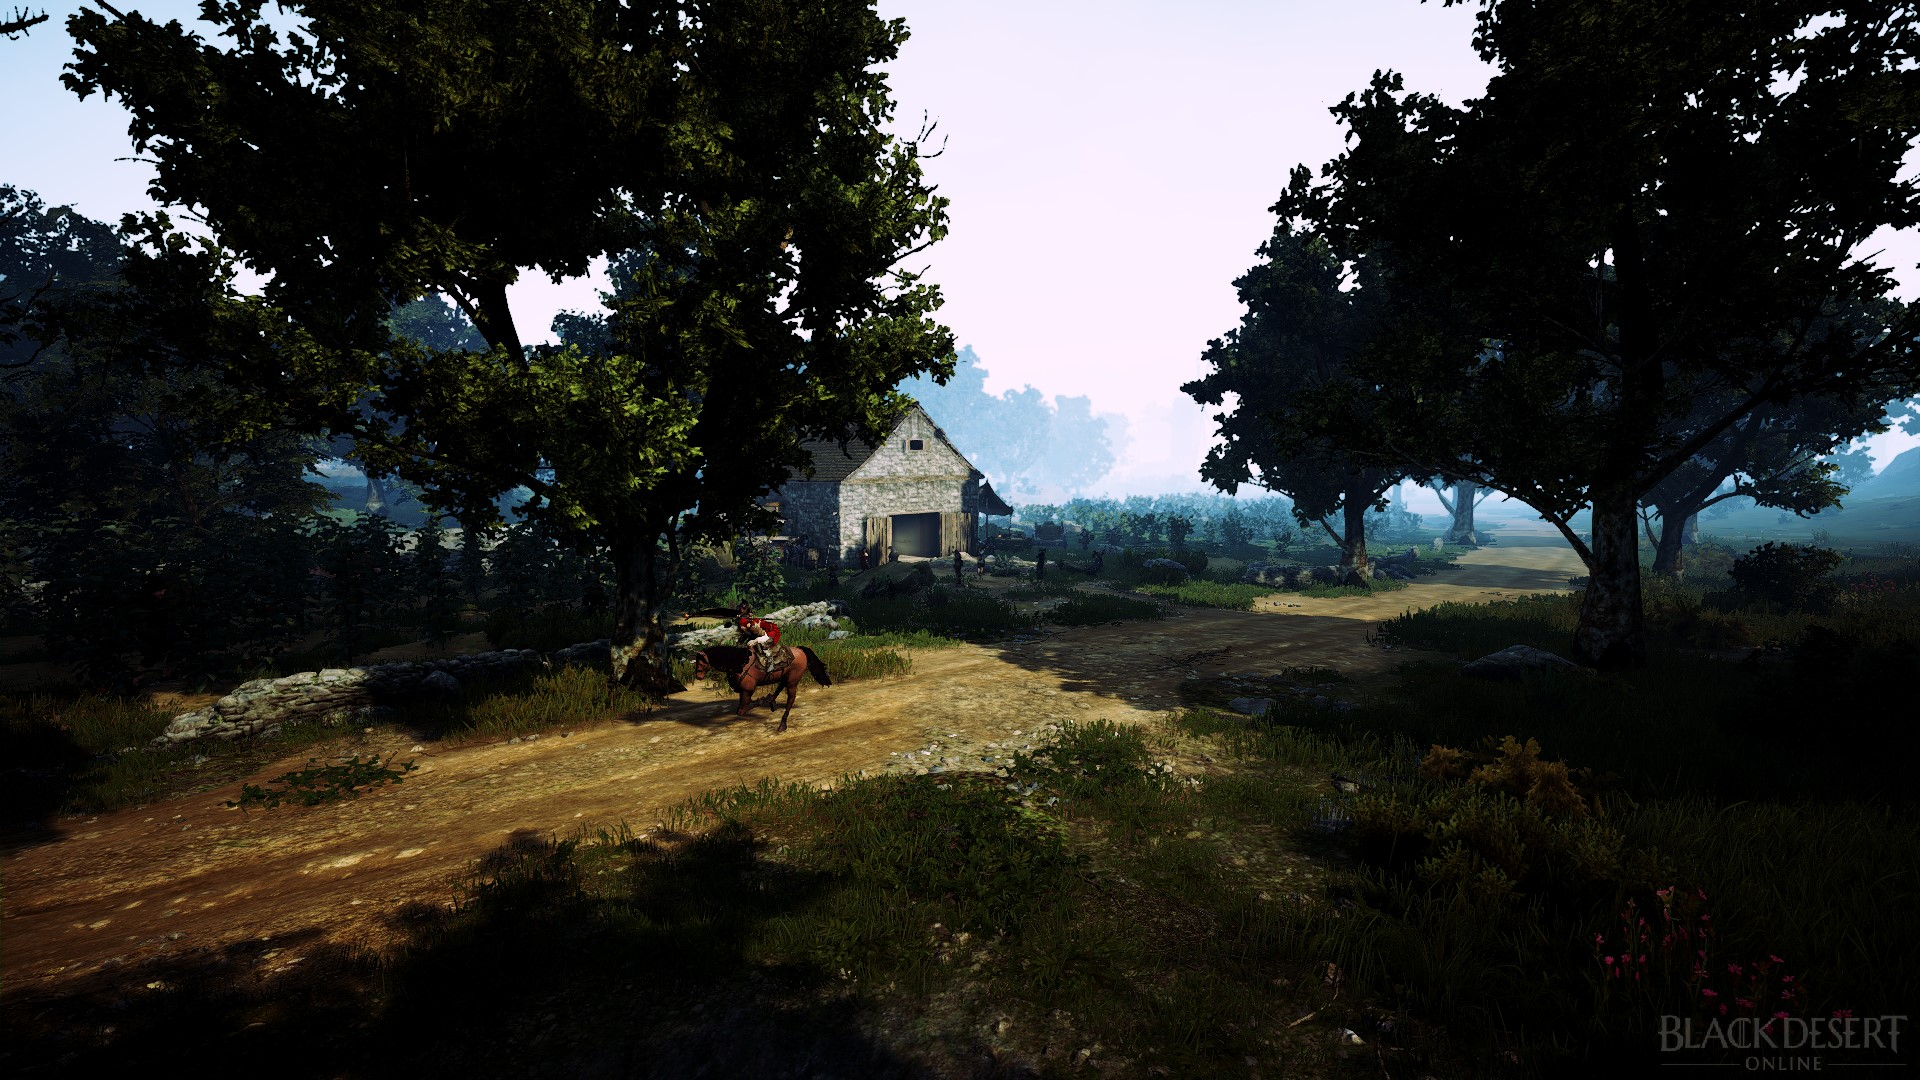 Bernianto Farm | Black Desert Wiki | FANDOM powered by Wikia